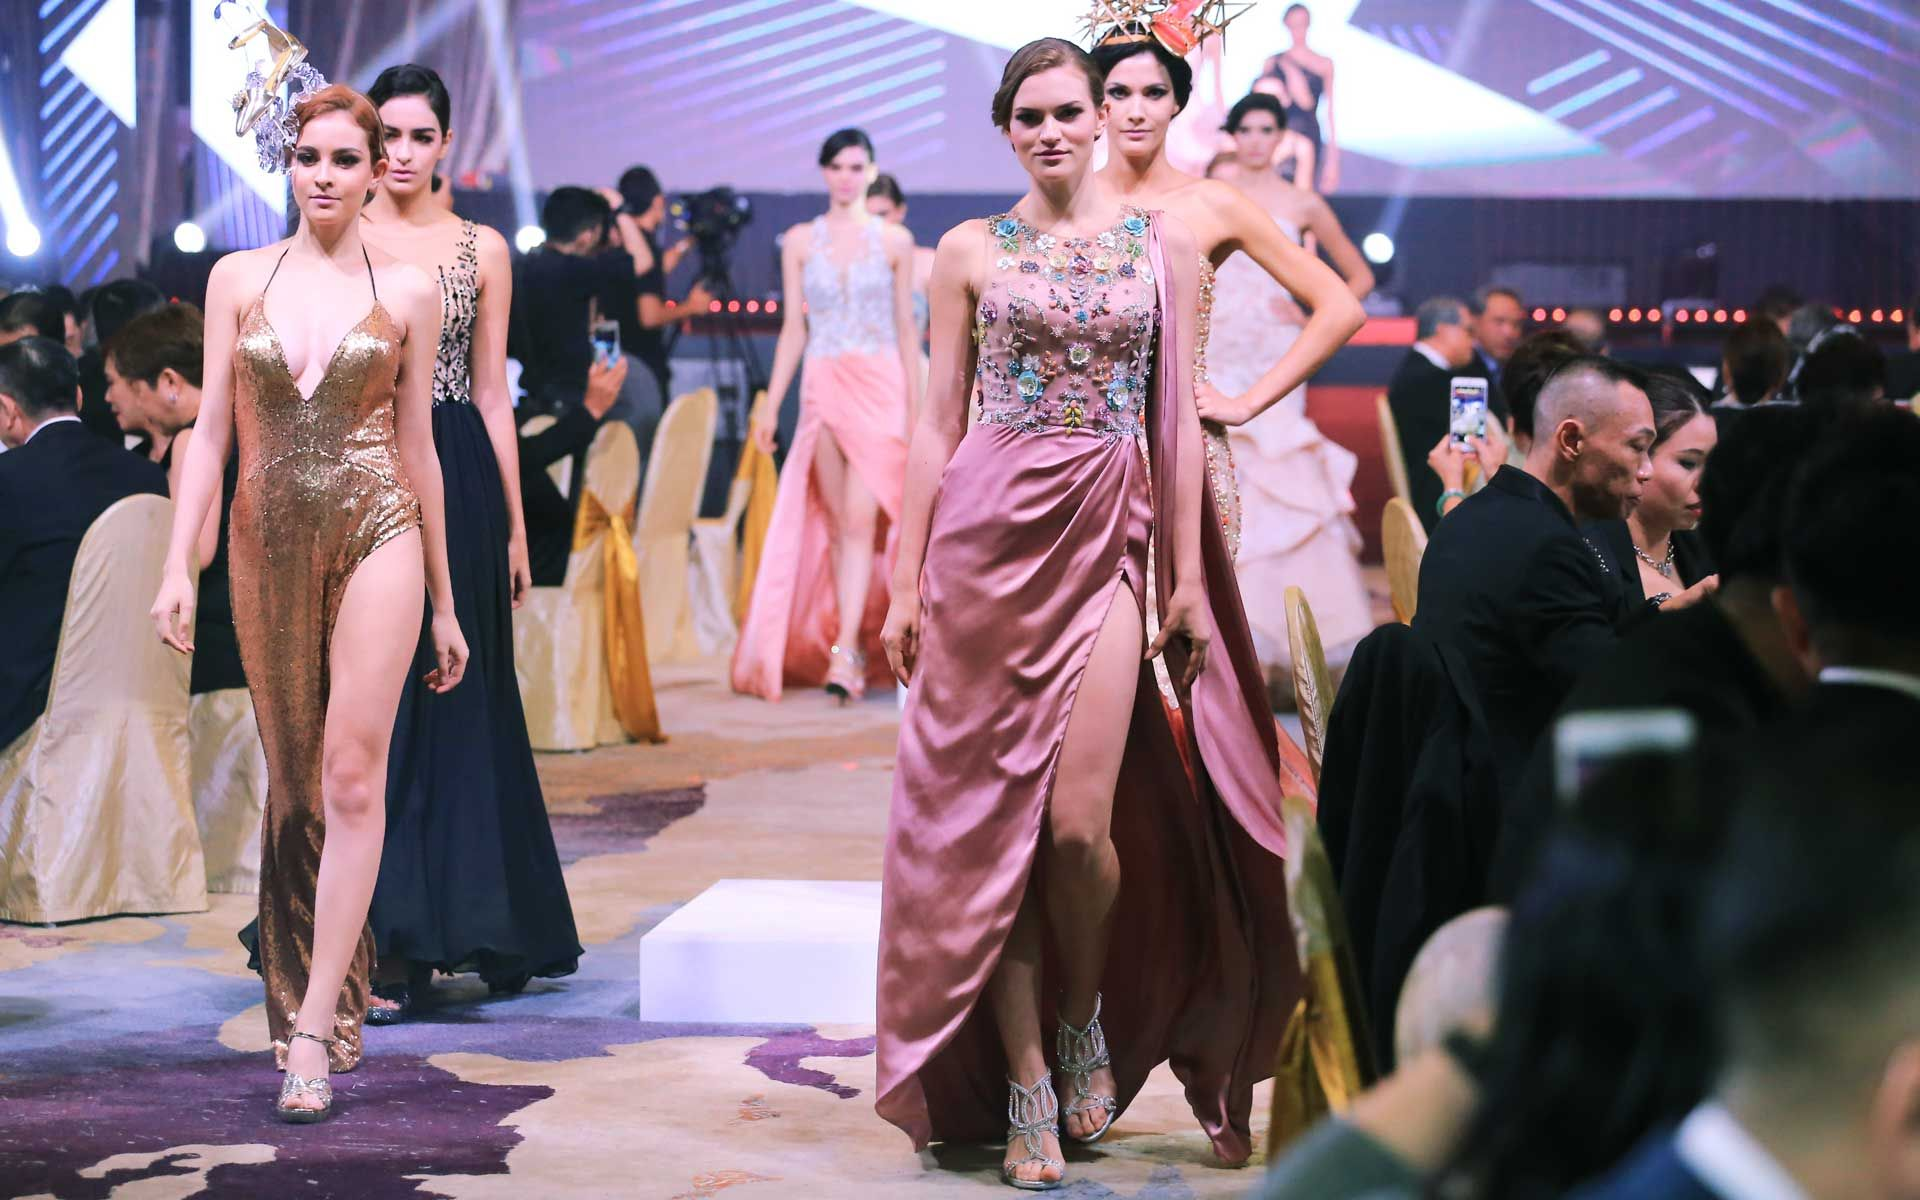 Fashion showcase by Carven Ong